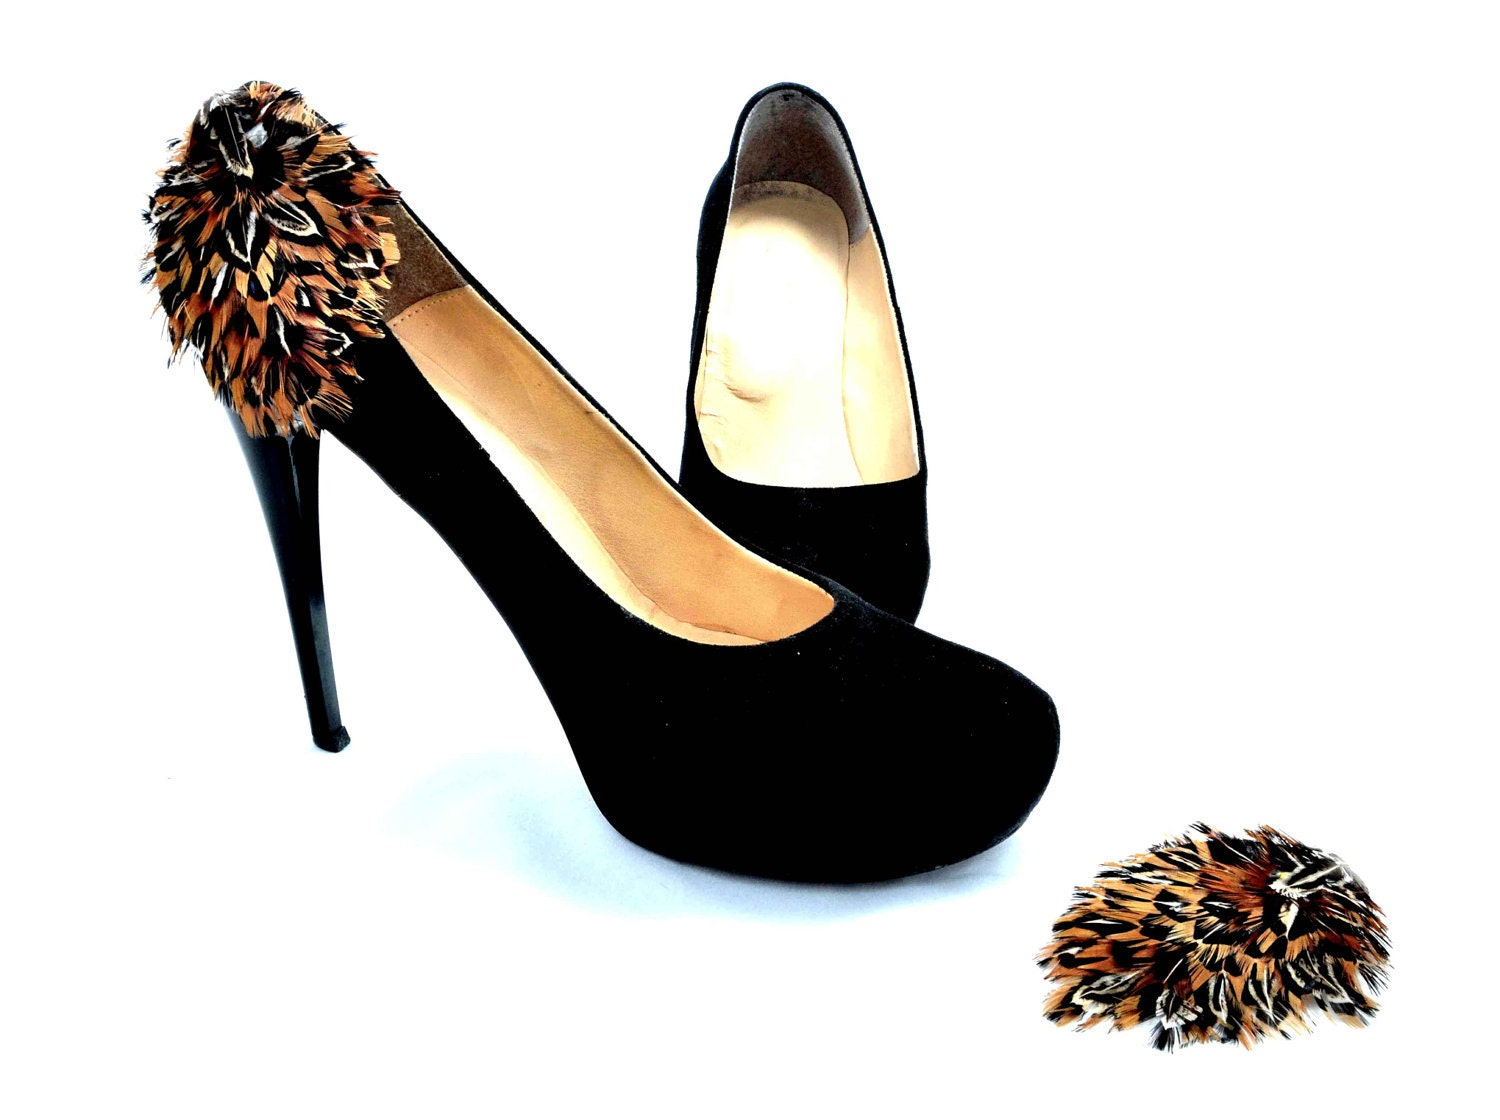 Nice Shoe Clips for Wedding / Black - Brown Feather Shoe Clips - HANDMADESHOECLIPS